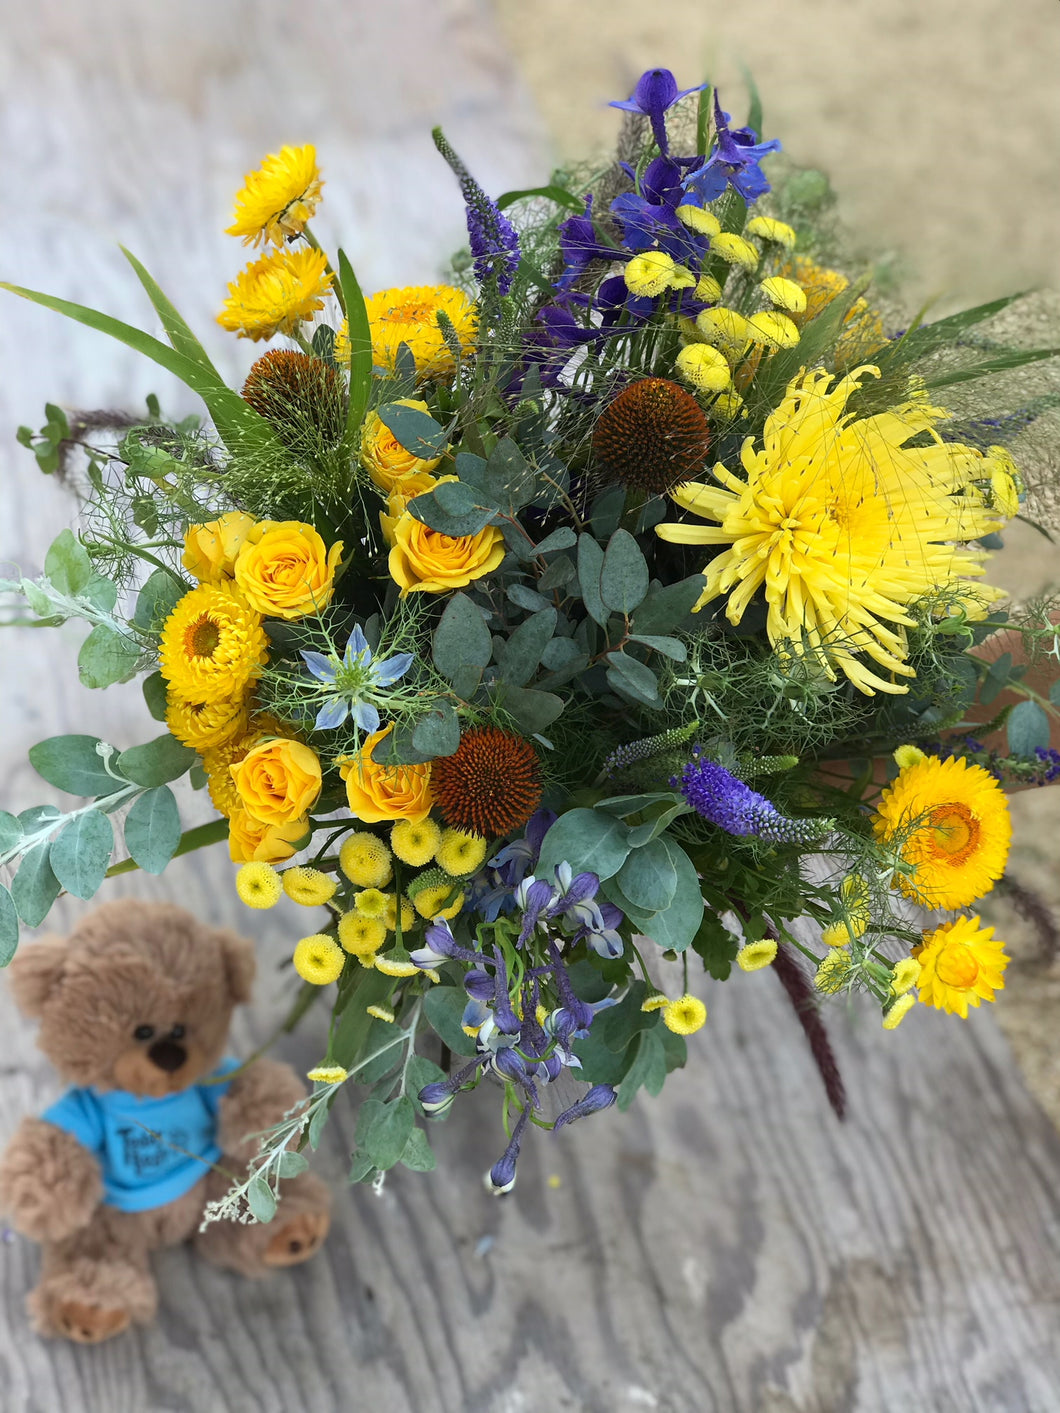 Teddy Bear Cancer Foundation Bouquet- Gift with Purpose